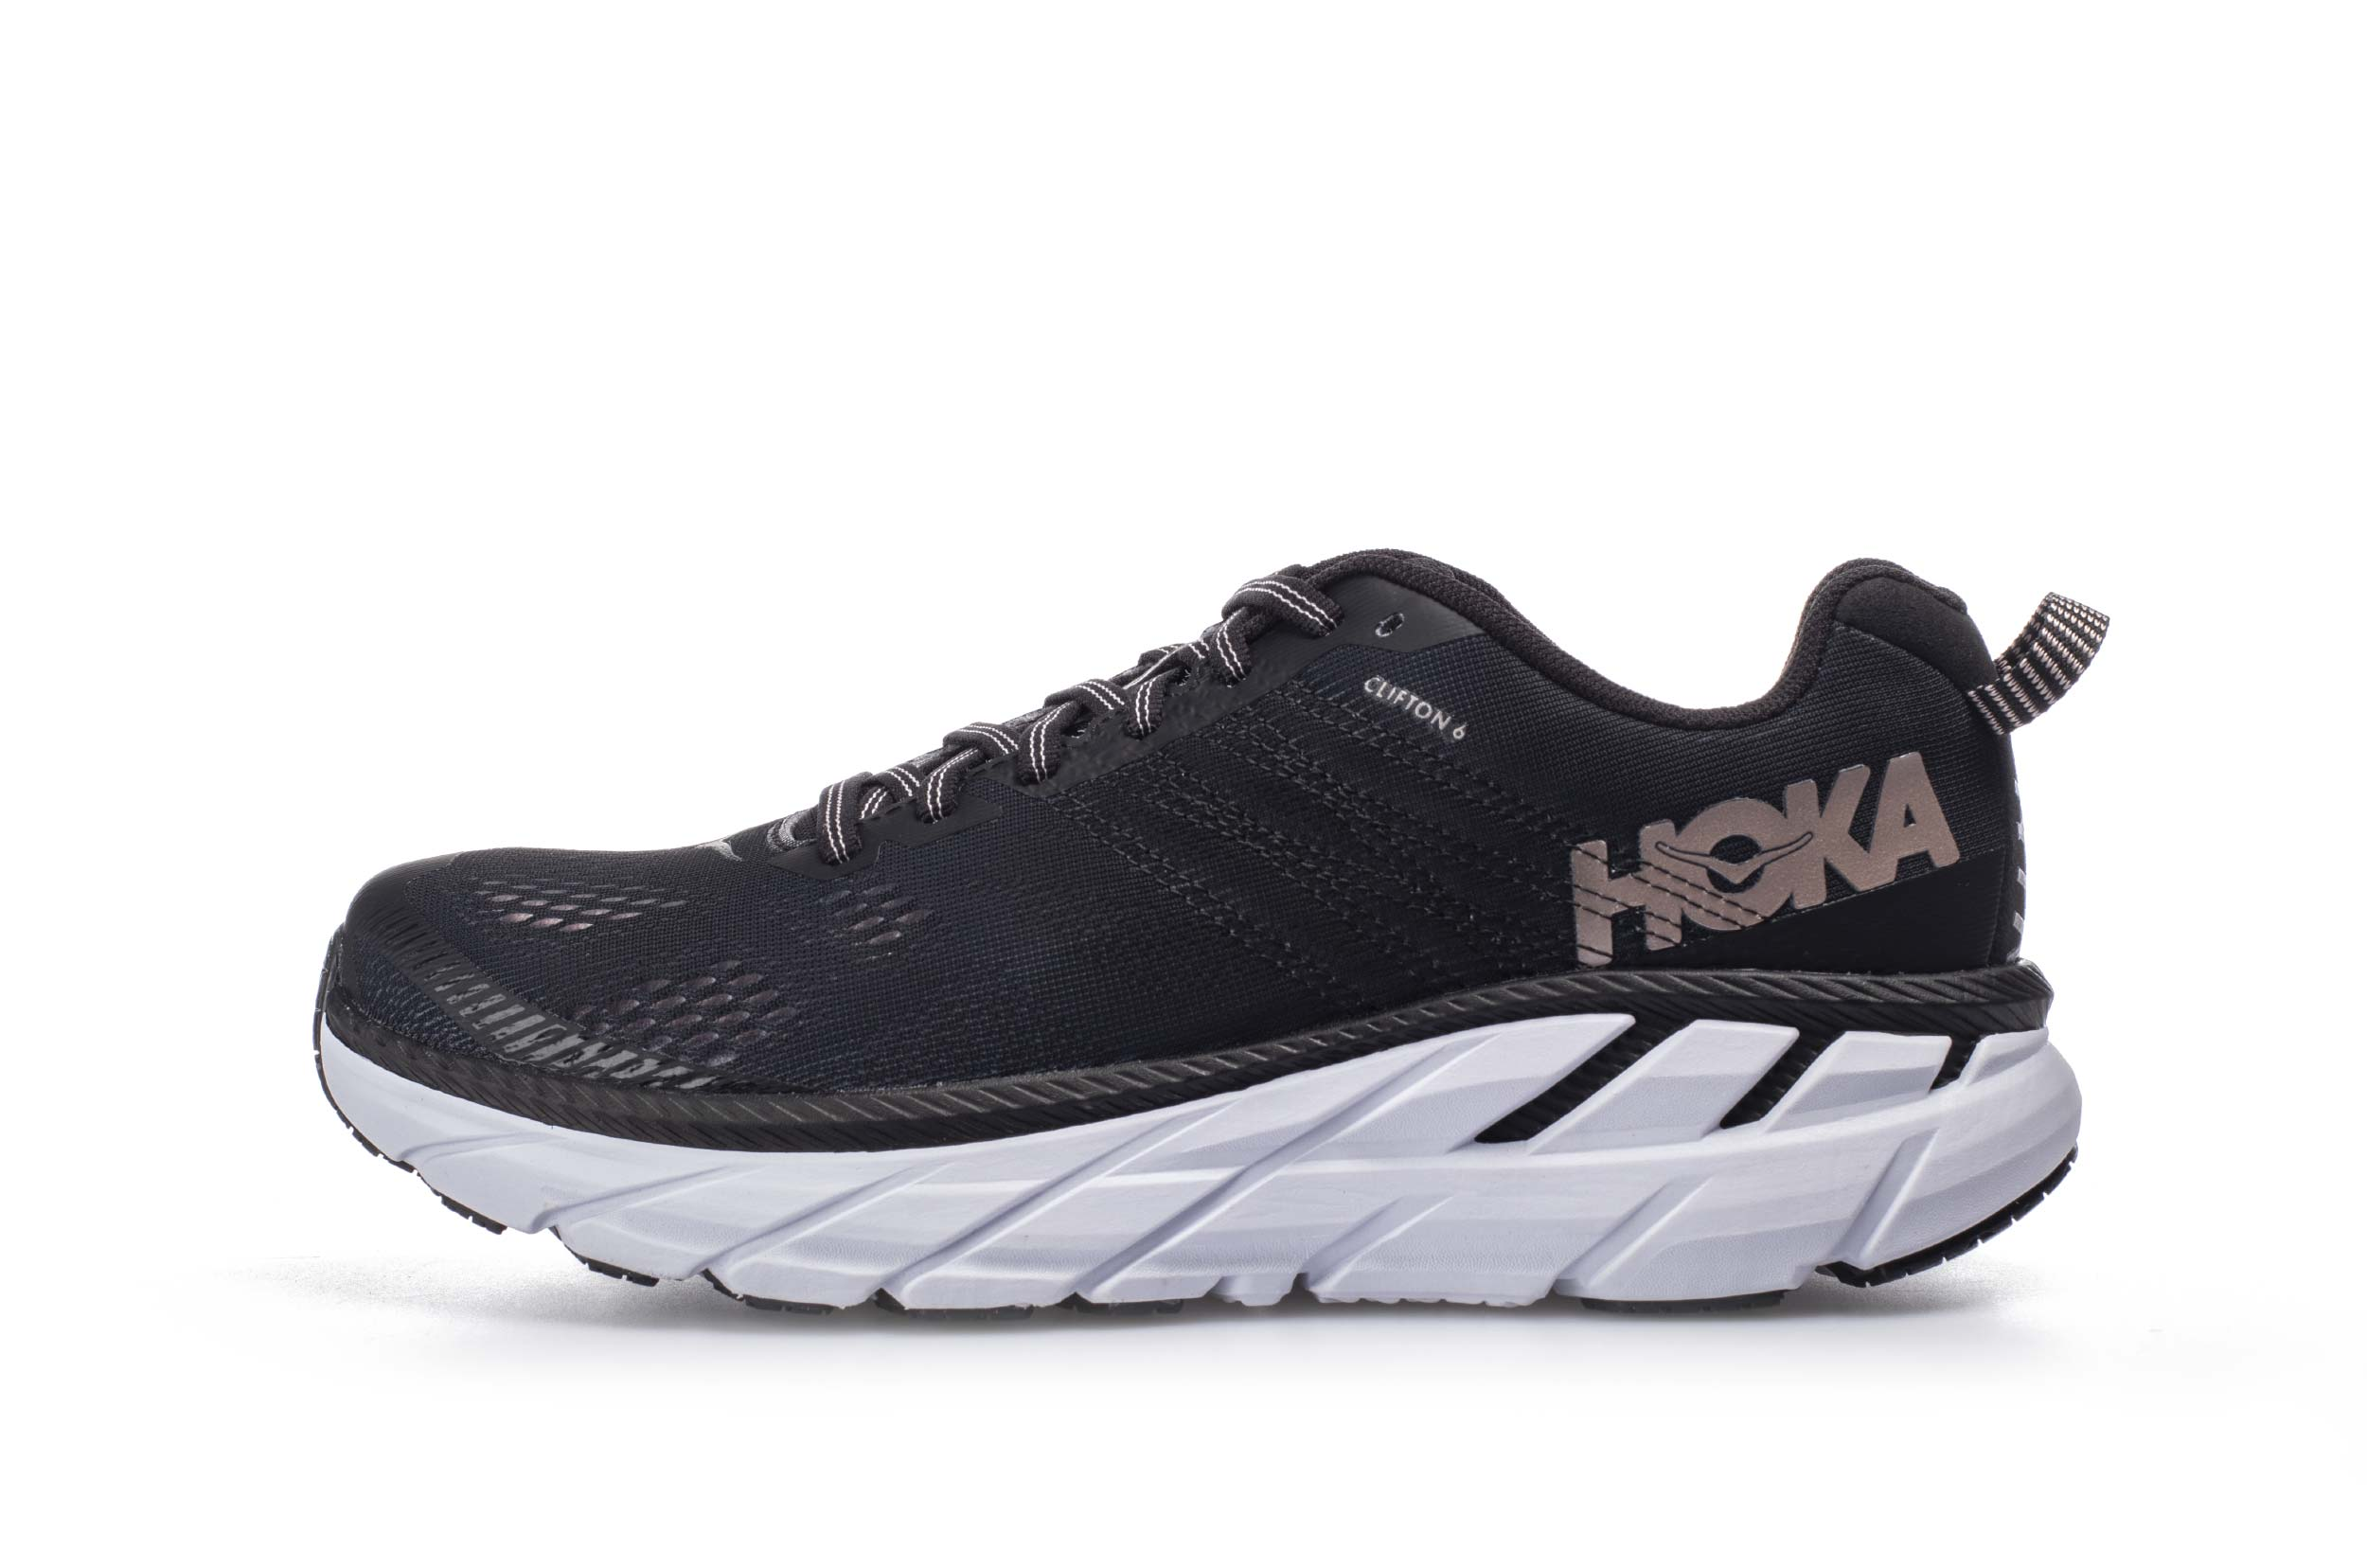 HOKA ONE ONE GLIDE CLIFTON 6 1102873-BRGL Μαύρο